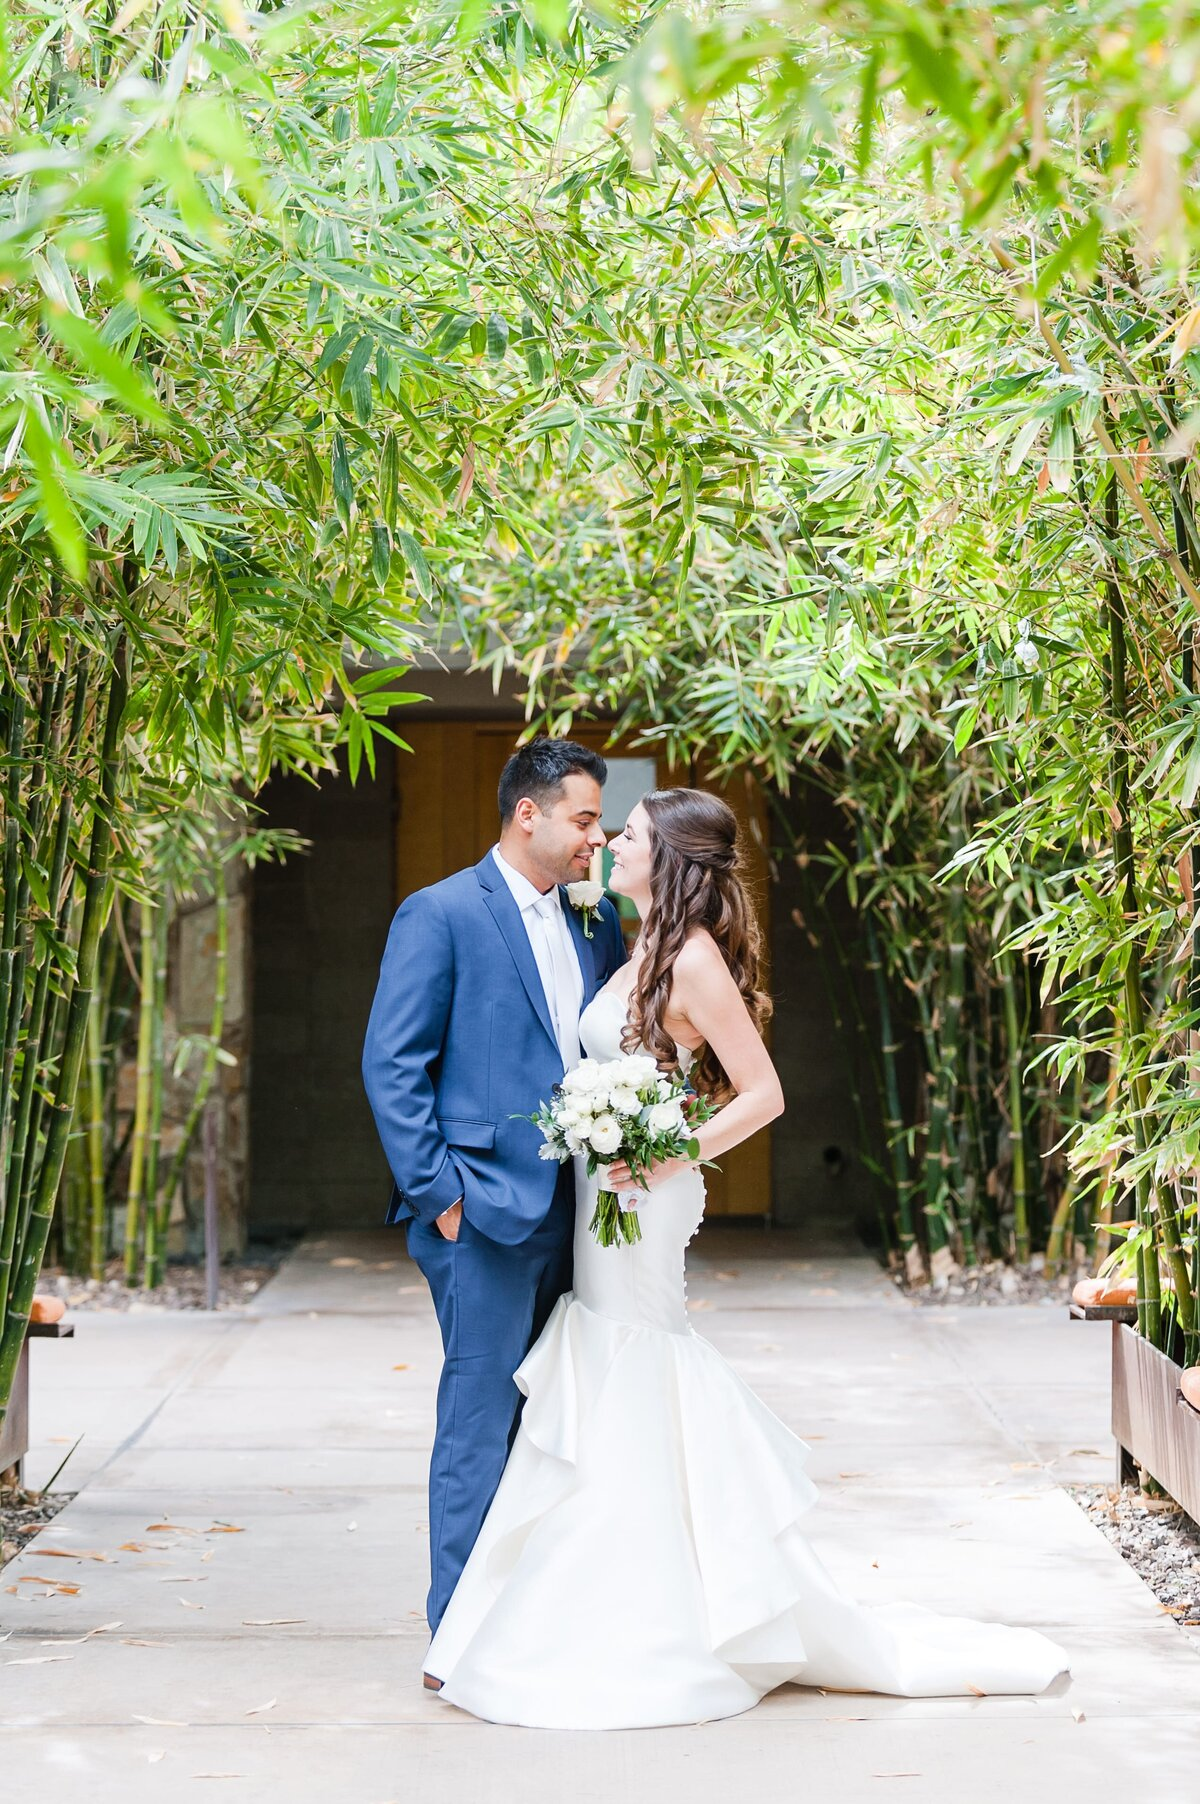 Sanctuary-on-Camelback-Wedding-by-Leslie-Ann-Photography-00008